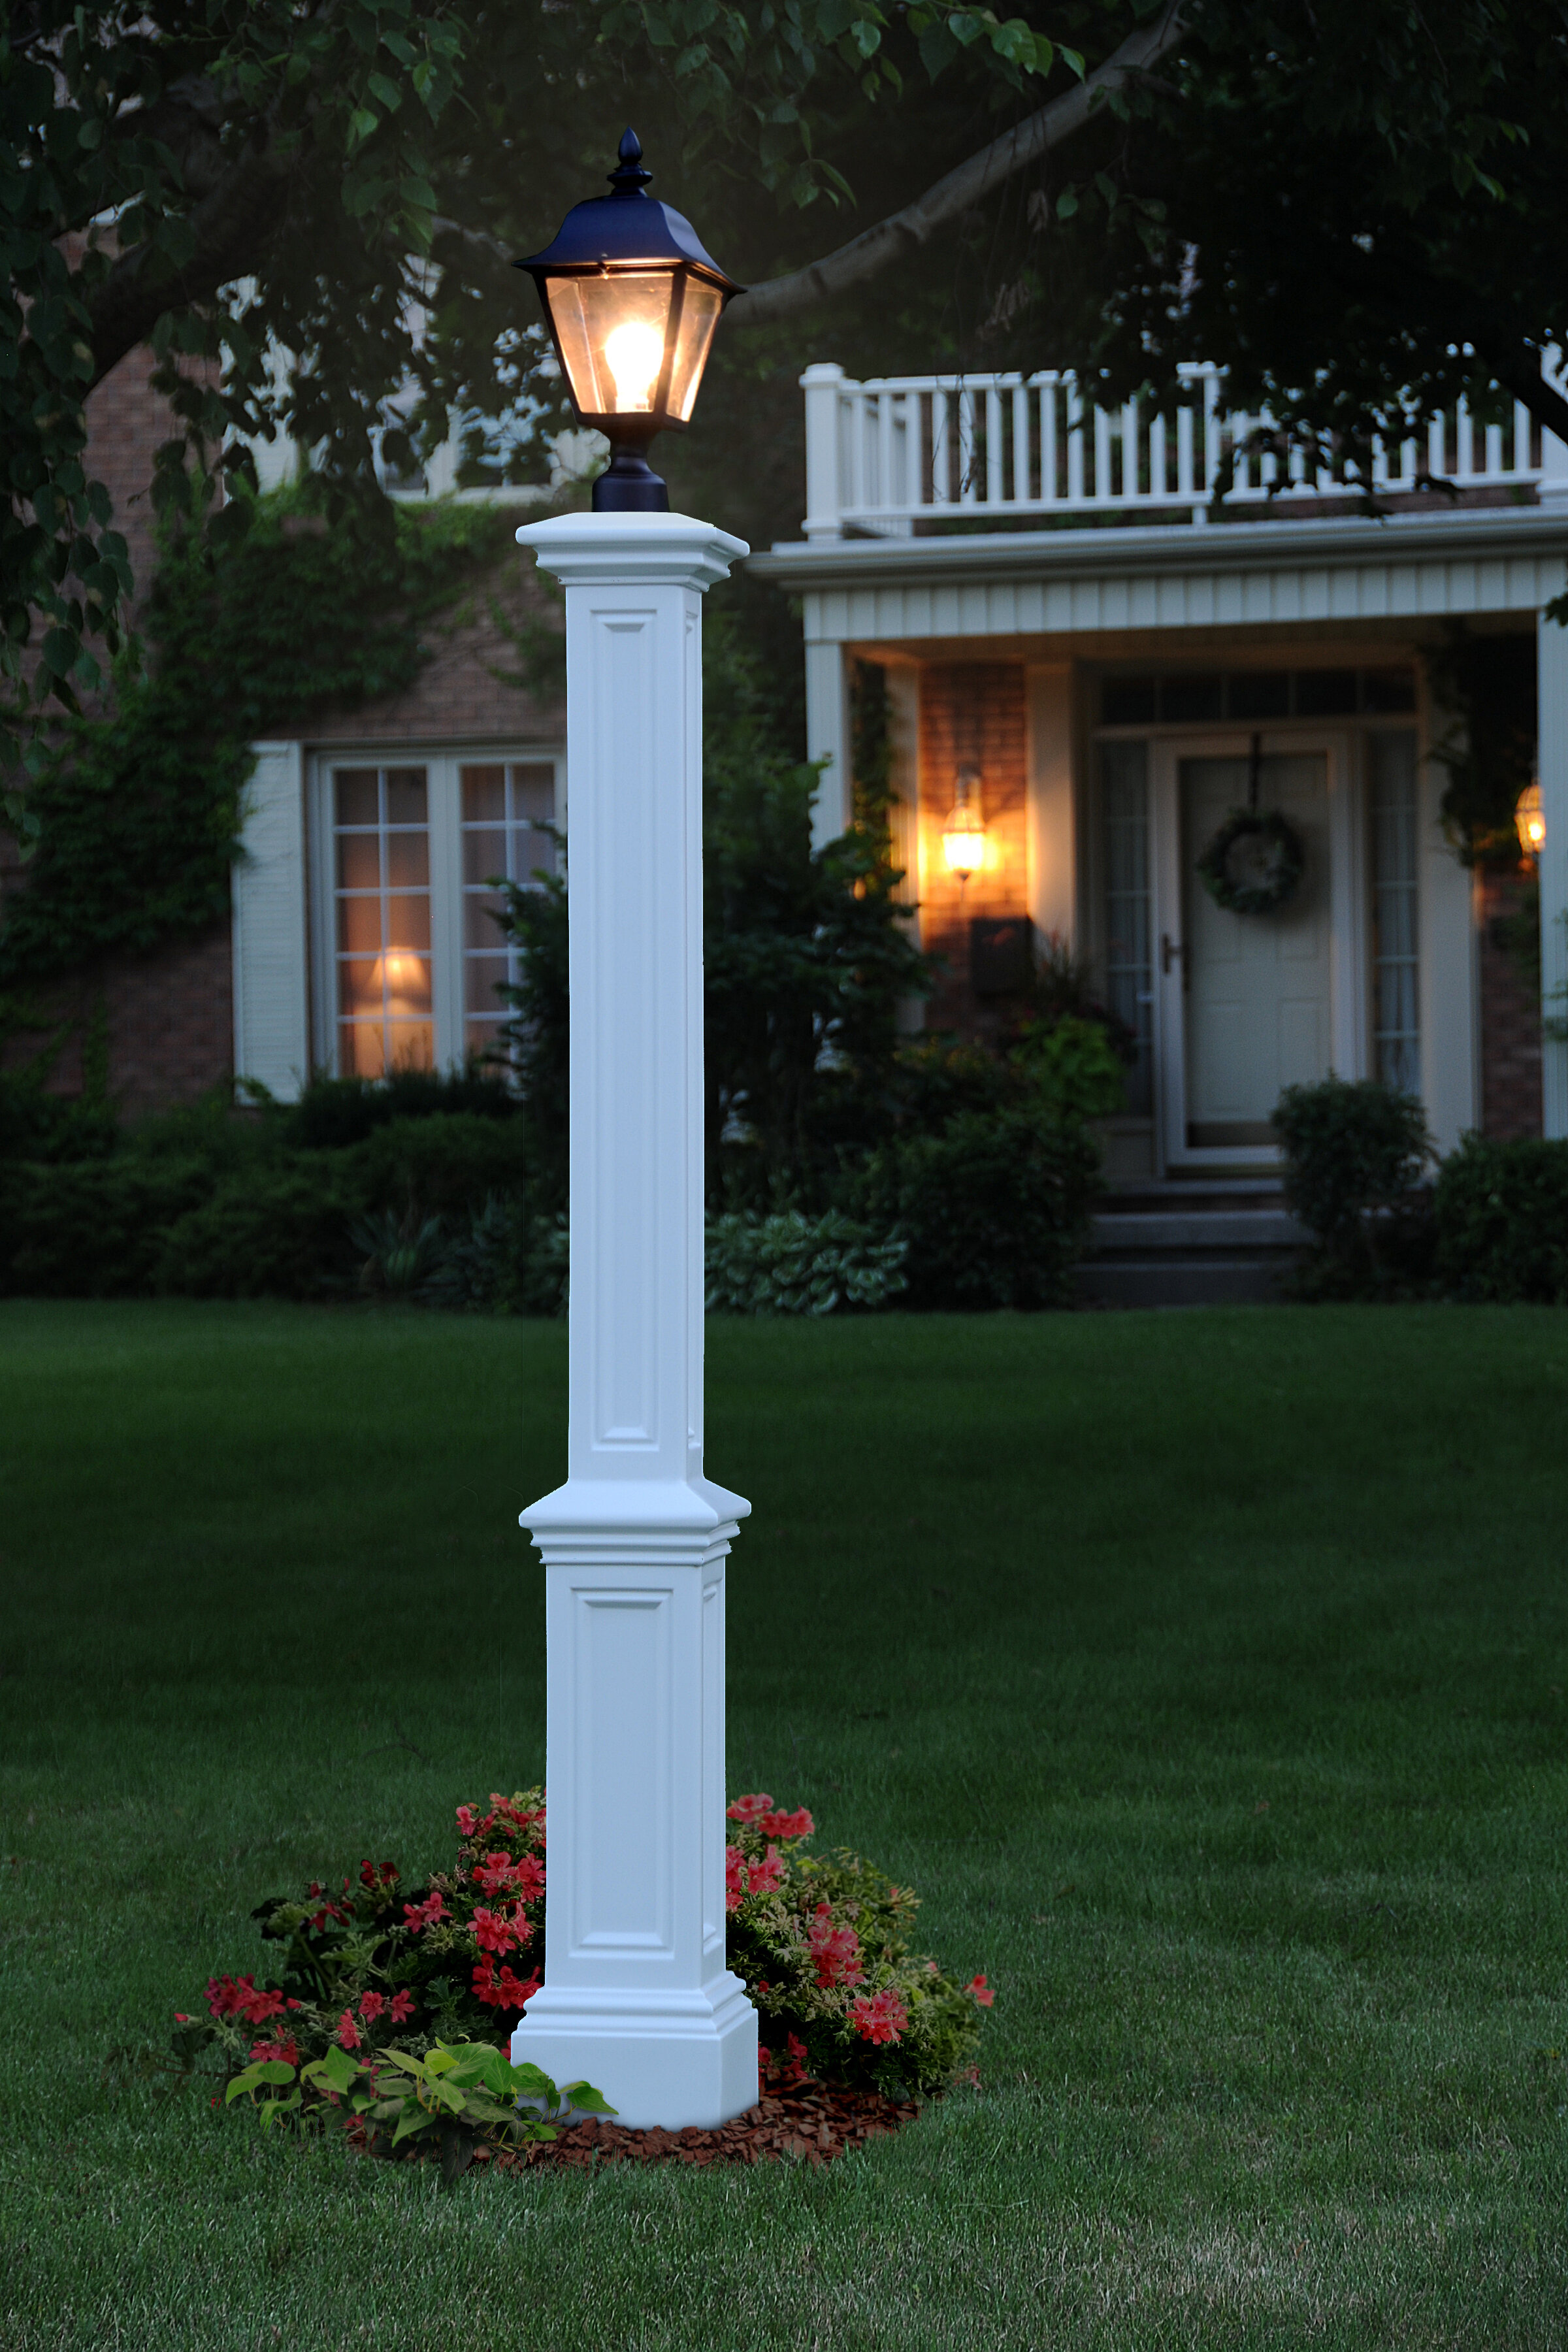 street driveway gate beautiful our with home of post solar one lamps ideas lamp the end lighting yard drop light led your lights magnificent depot